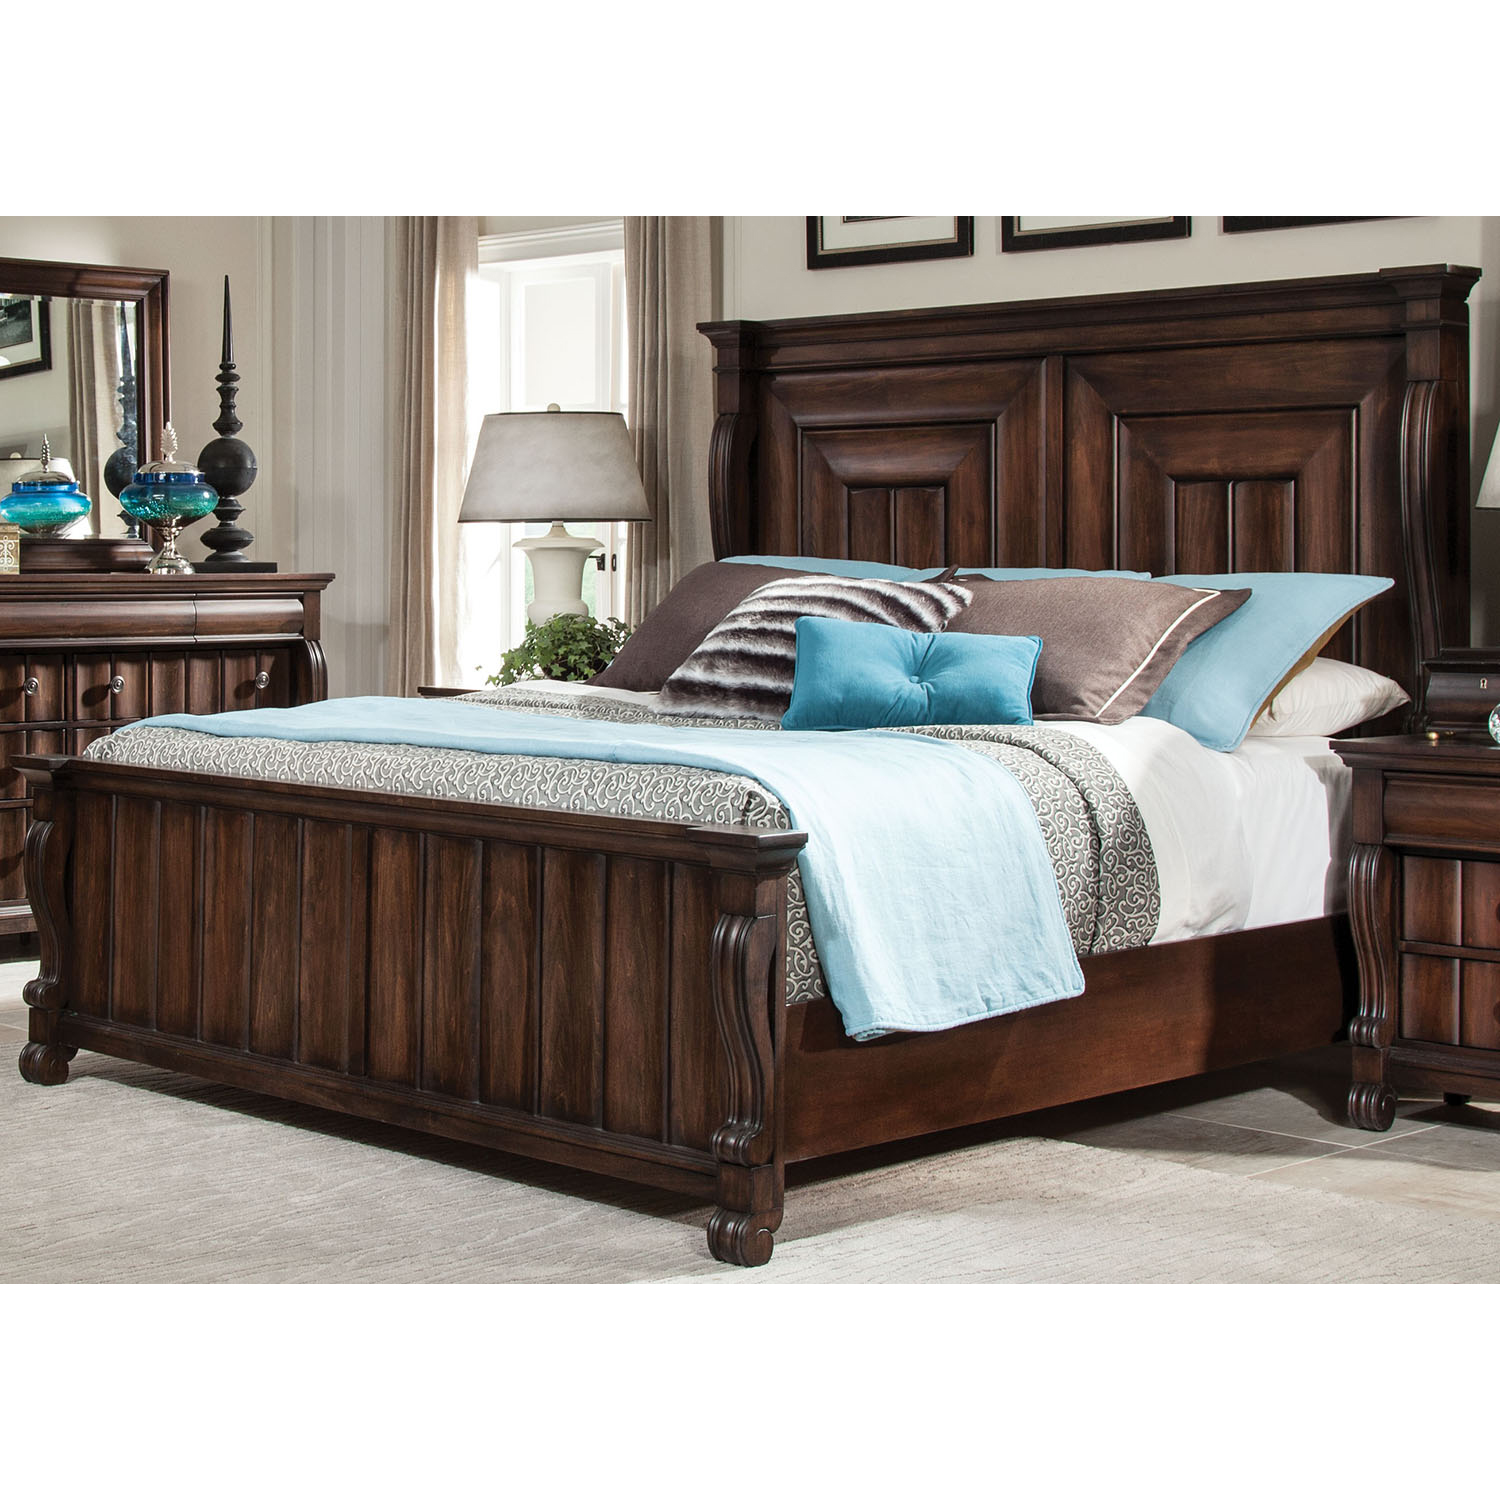 High Society Queen Panel Bed in Walnut - AW-8600-50PAN